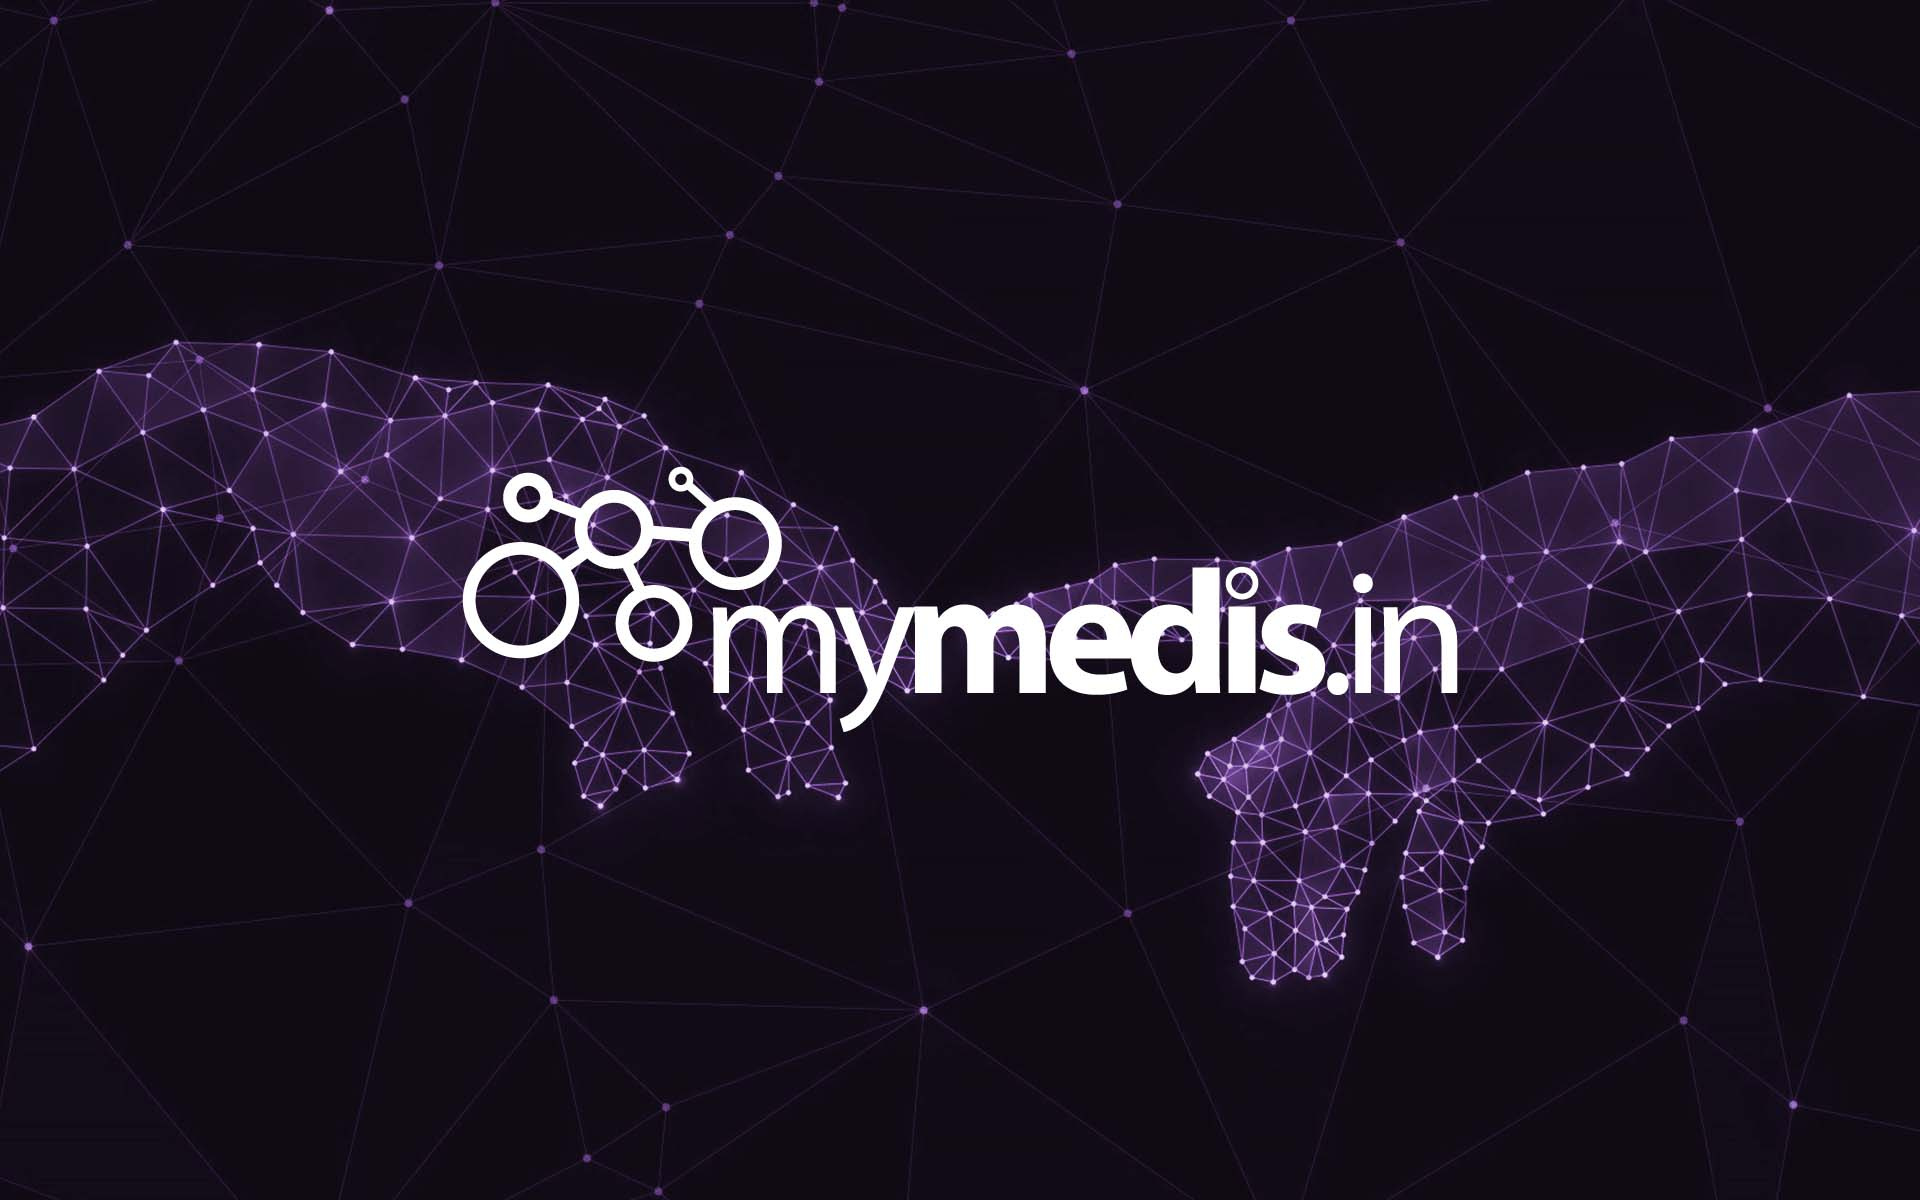 MyMEDIS Readies For ICO Launch – Creates A New Paradigm In The Healthcare Industry Using Blockchain Technology Creating a Patient-Centric Model For Health Care Payments and Data Storage